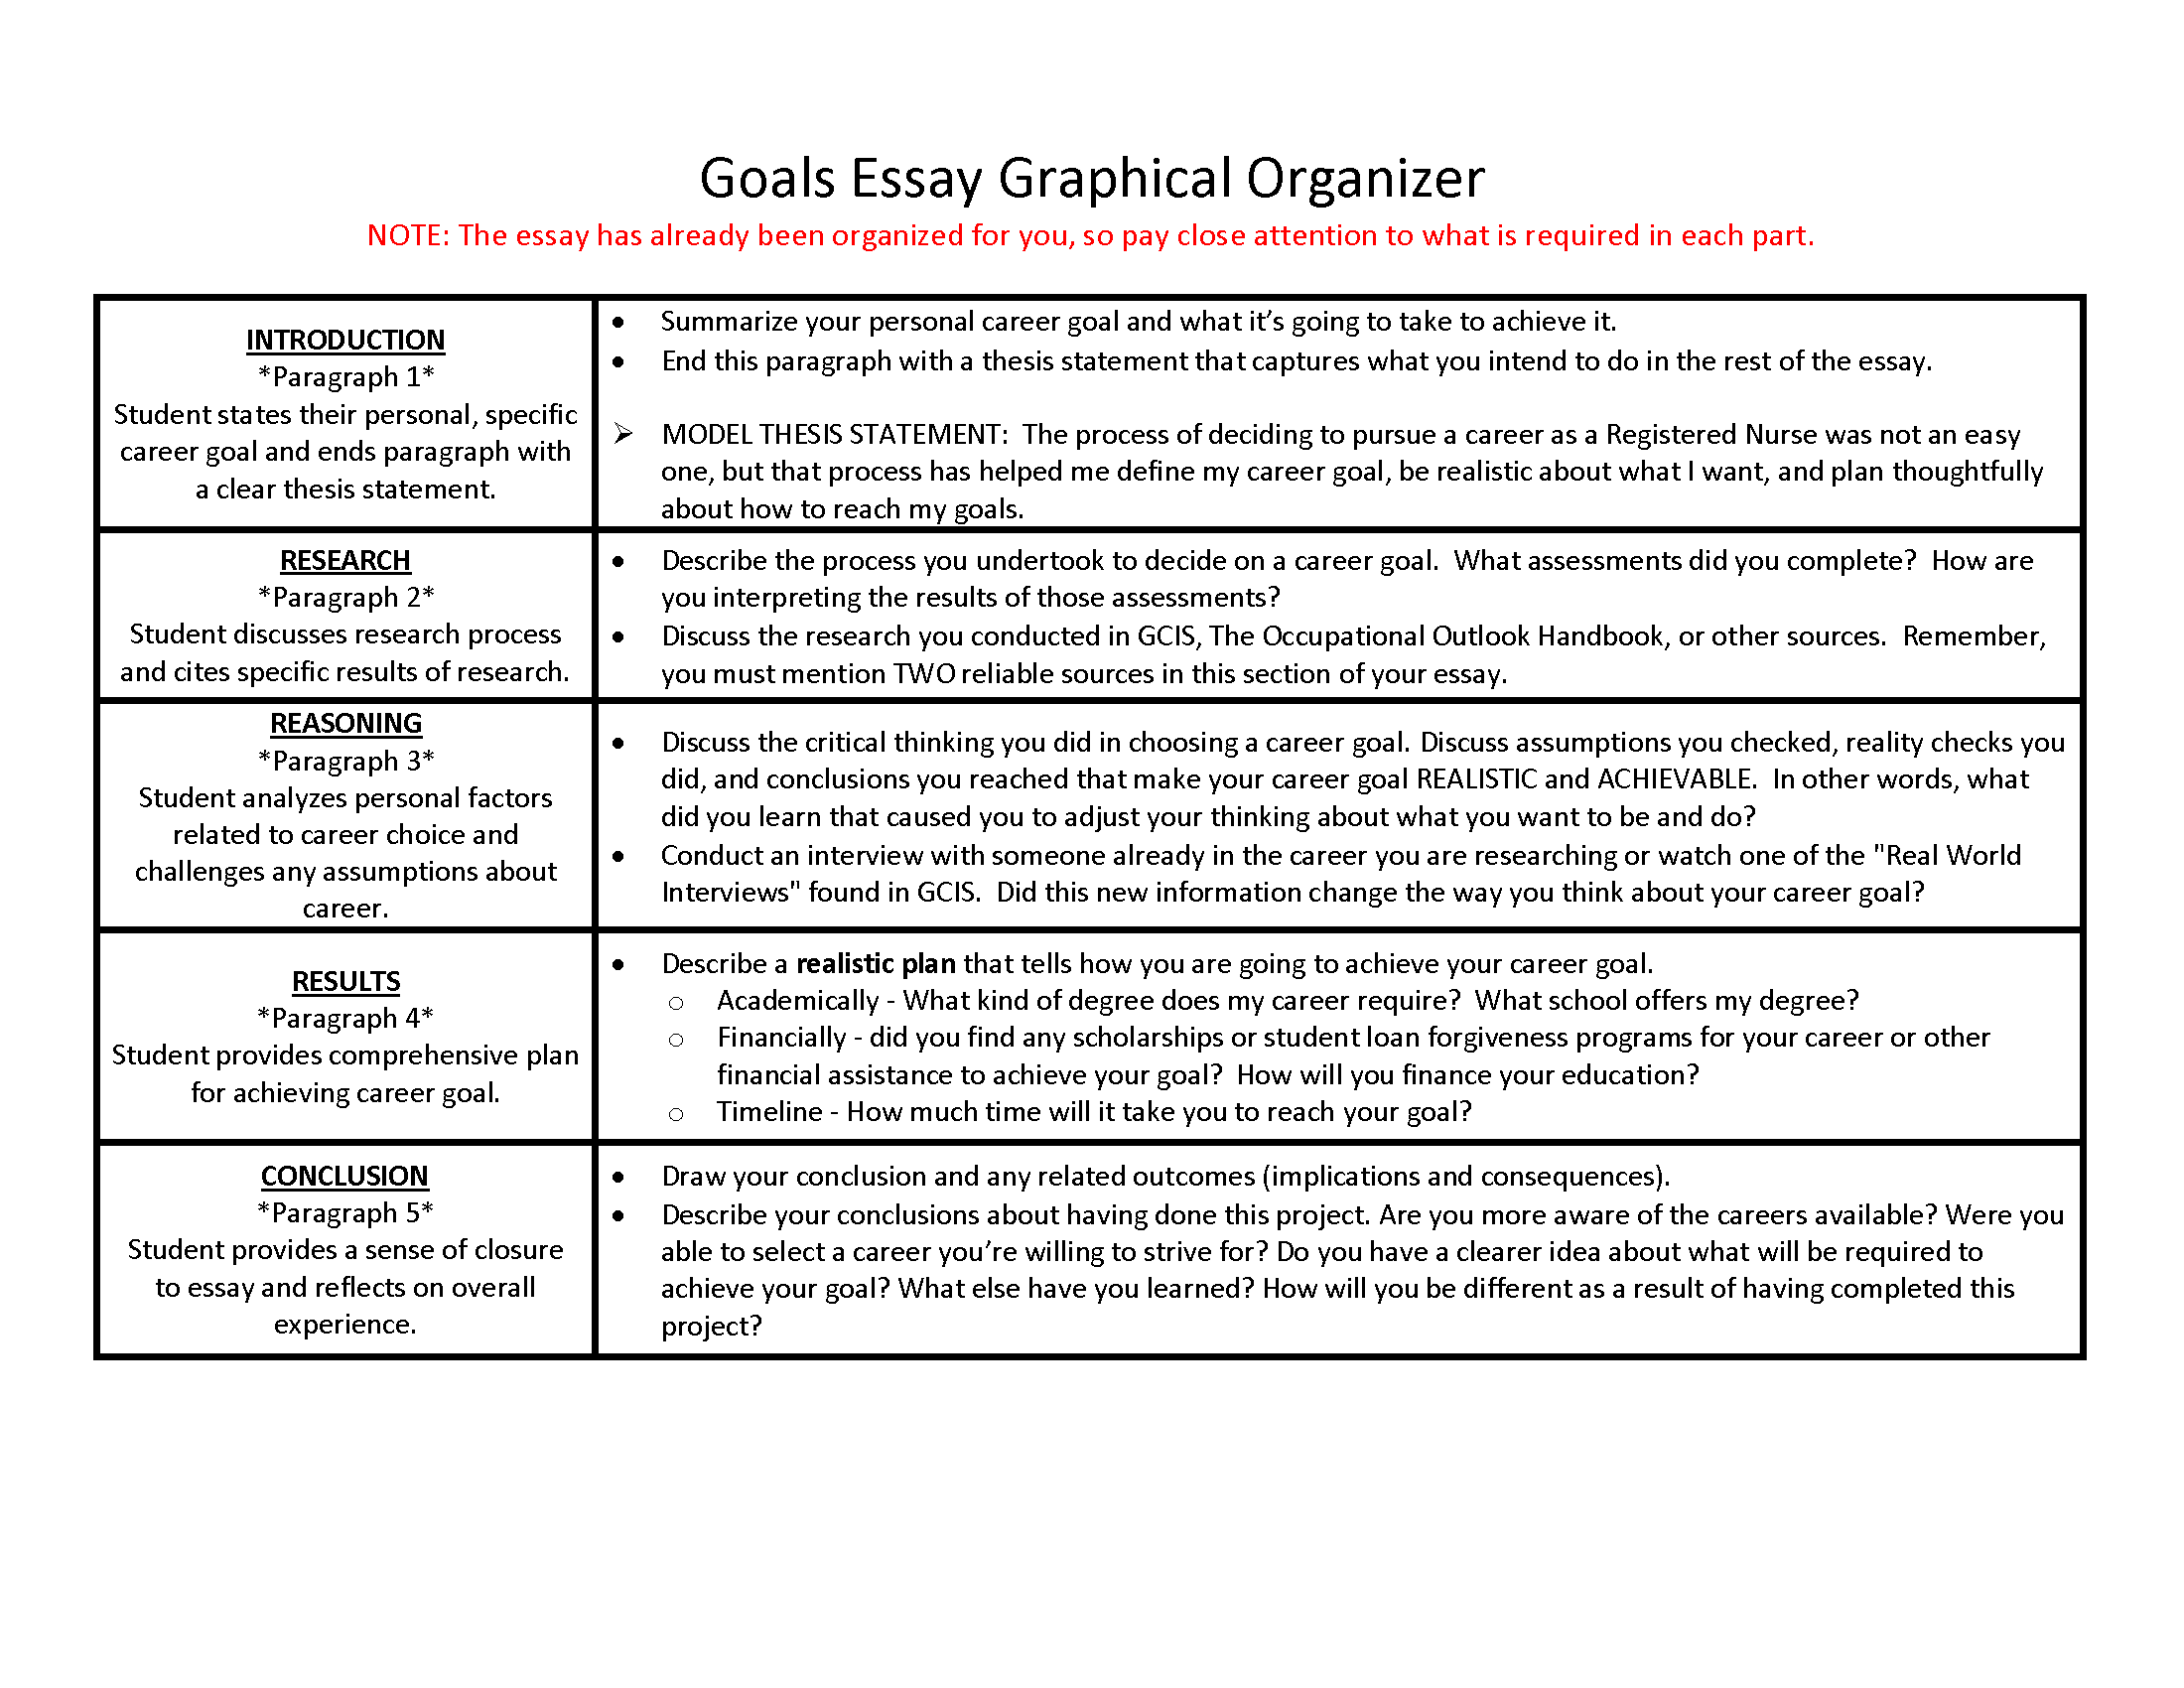 Assignments Assignment Help And Homework Help Goals And Aspirations  Joseph English Essayist Population Essay In English also Persuasive Essays Examples For High School Essays Written By High School Students